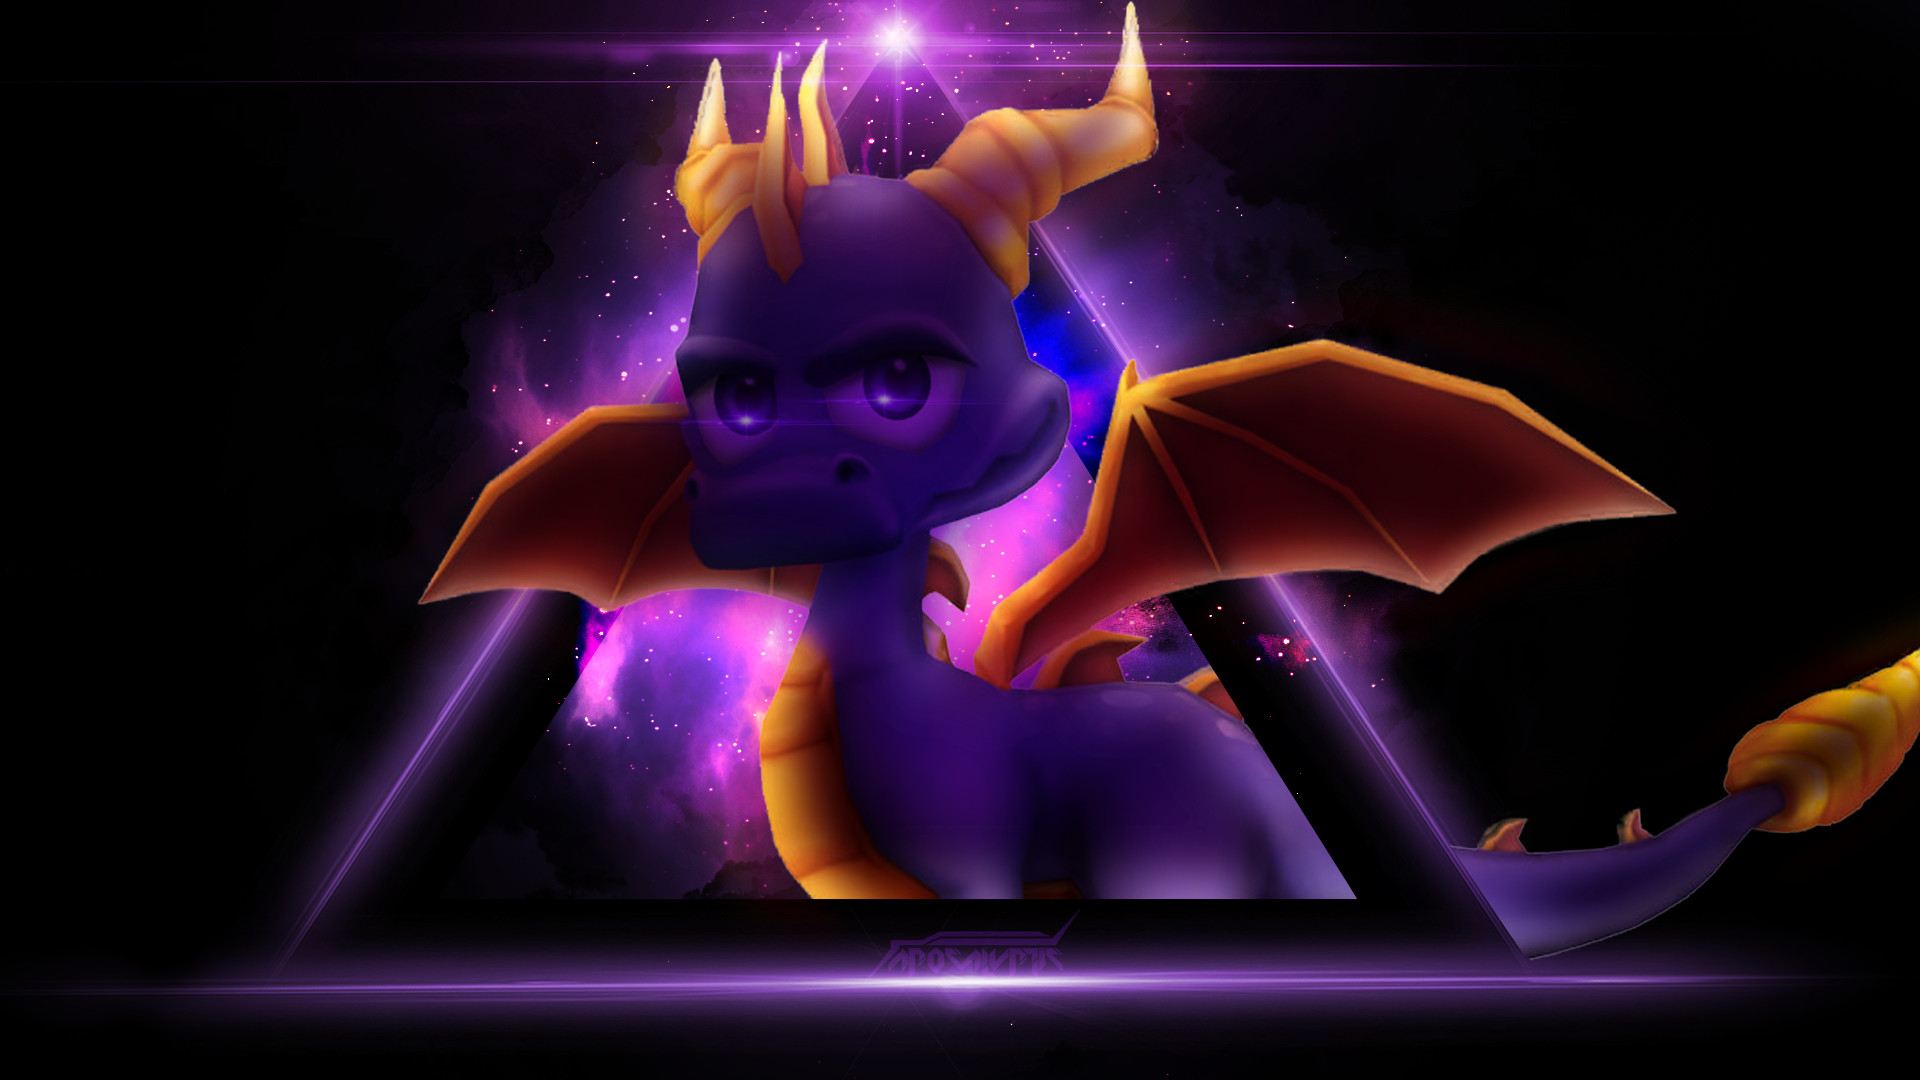 1920x1080 Wallpaper Spyro By OfficialApocalyptic